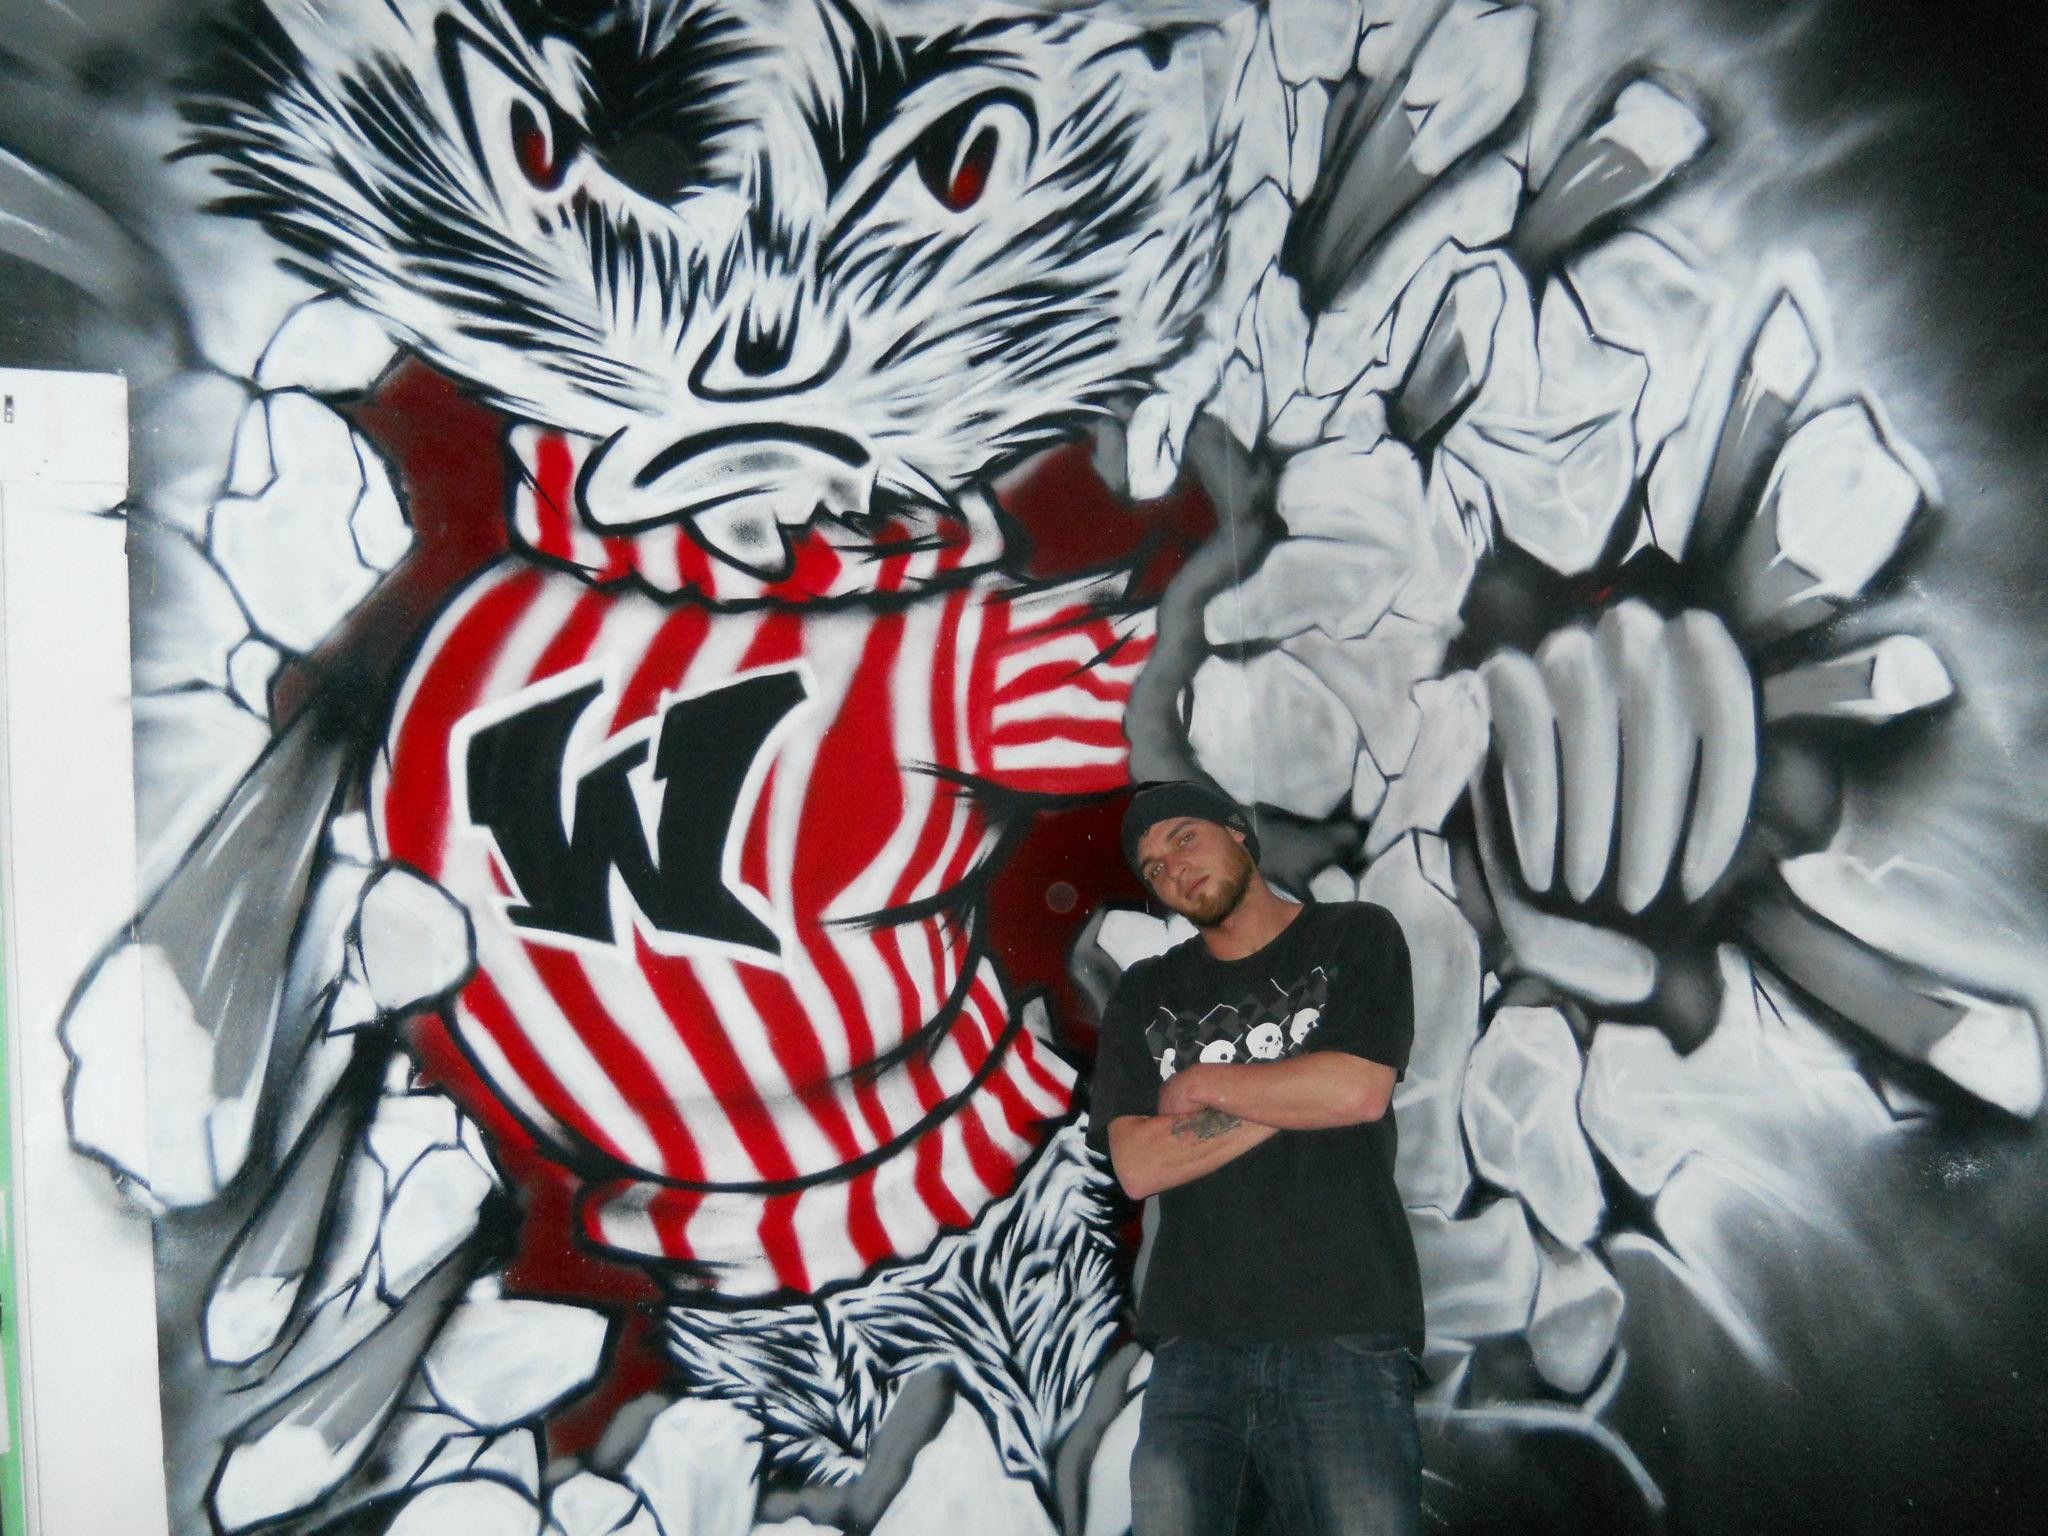 Res: 2048x1536, cosa ink graffiti bucky the badger